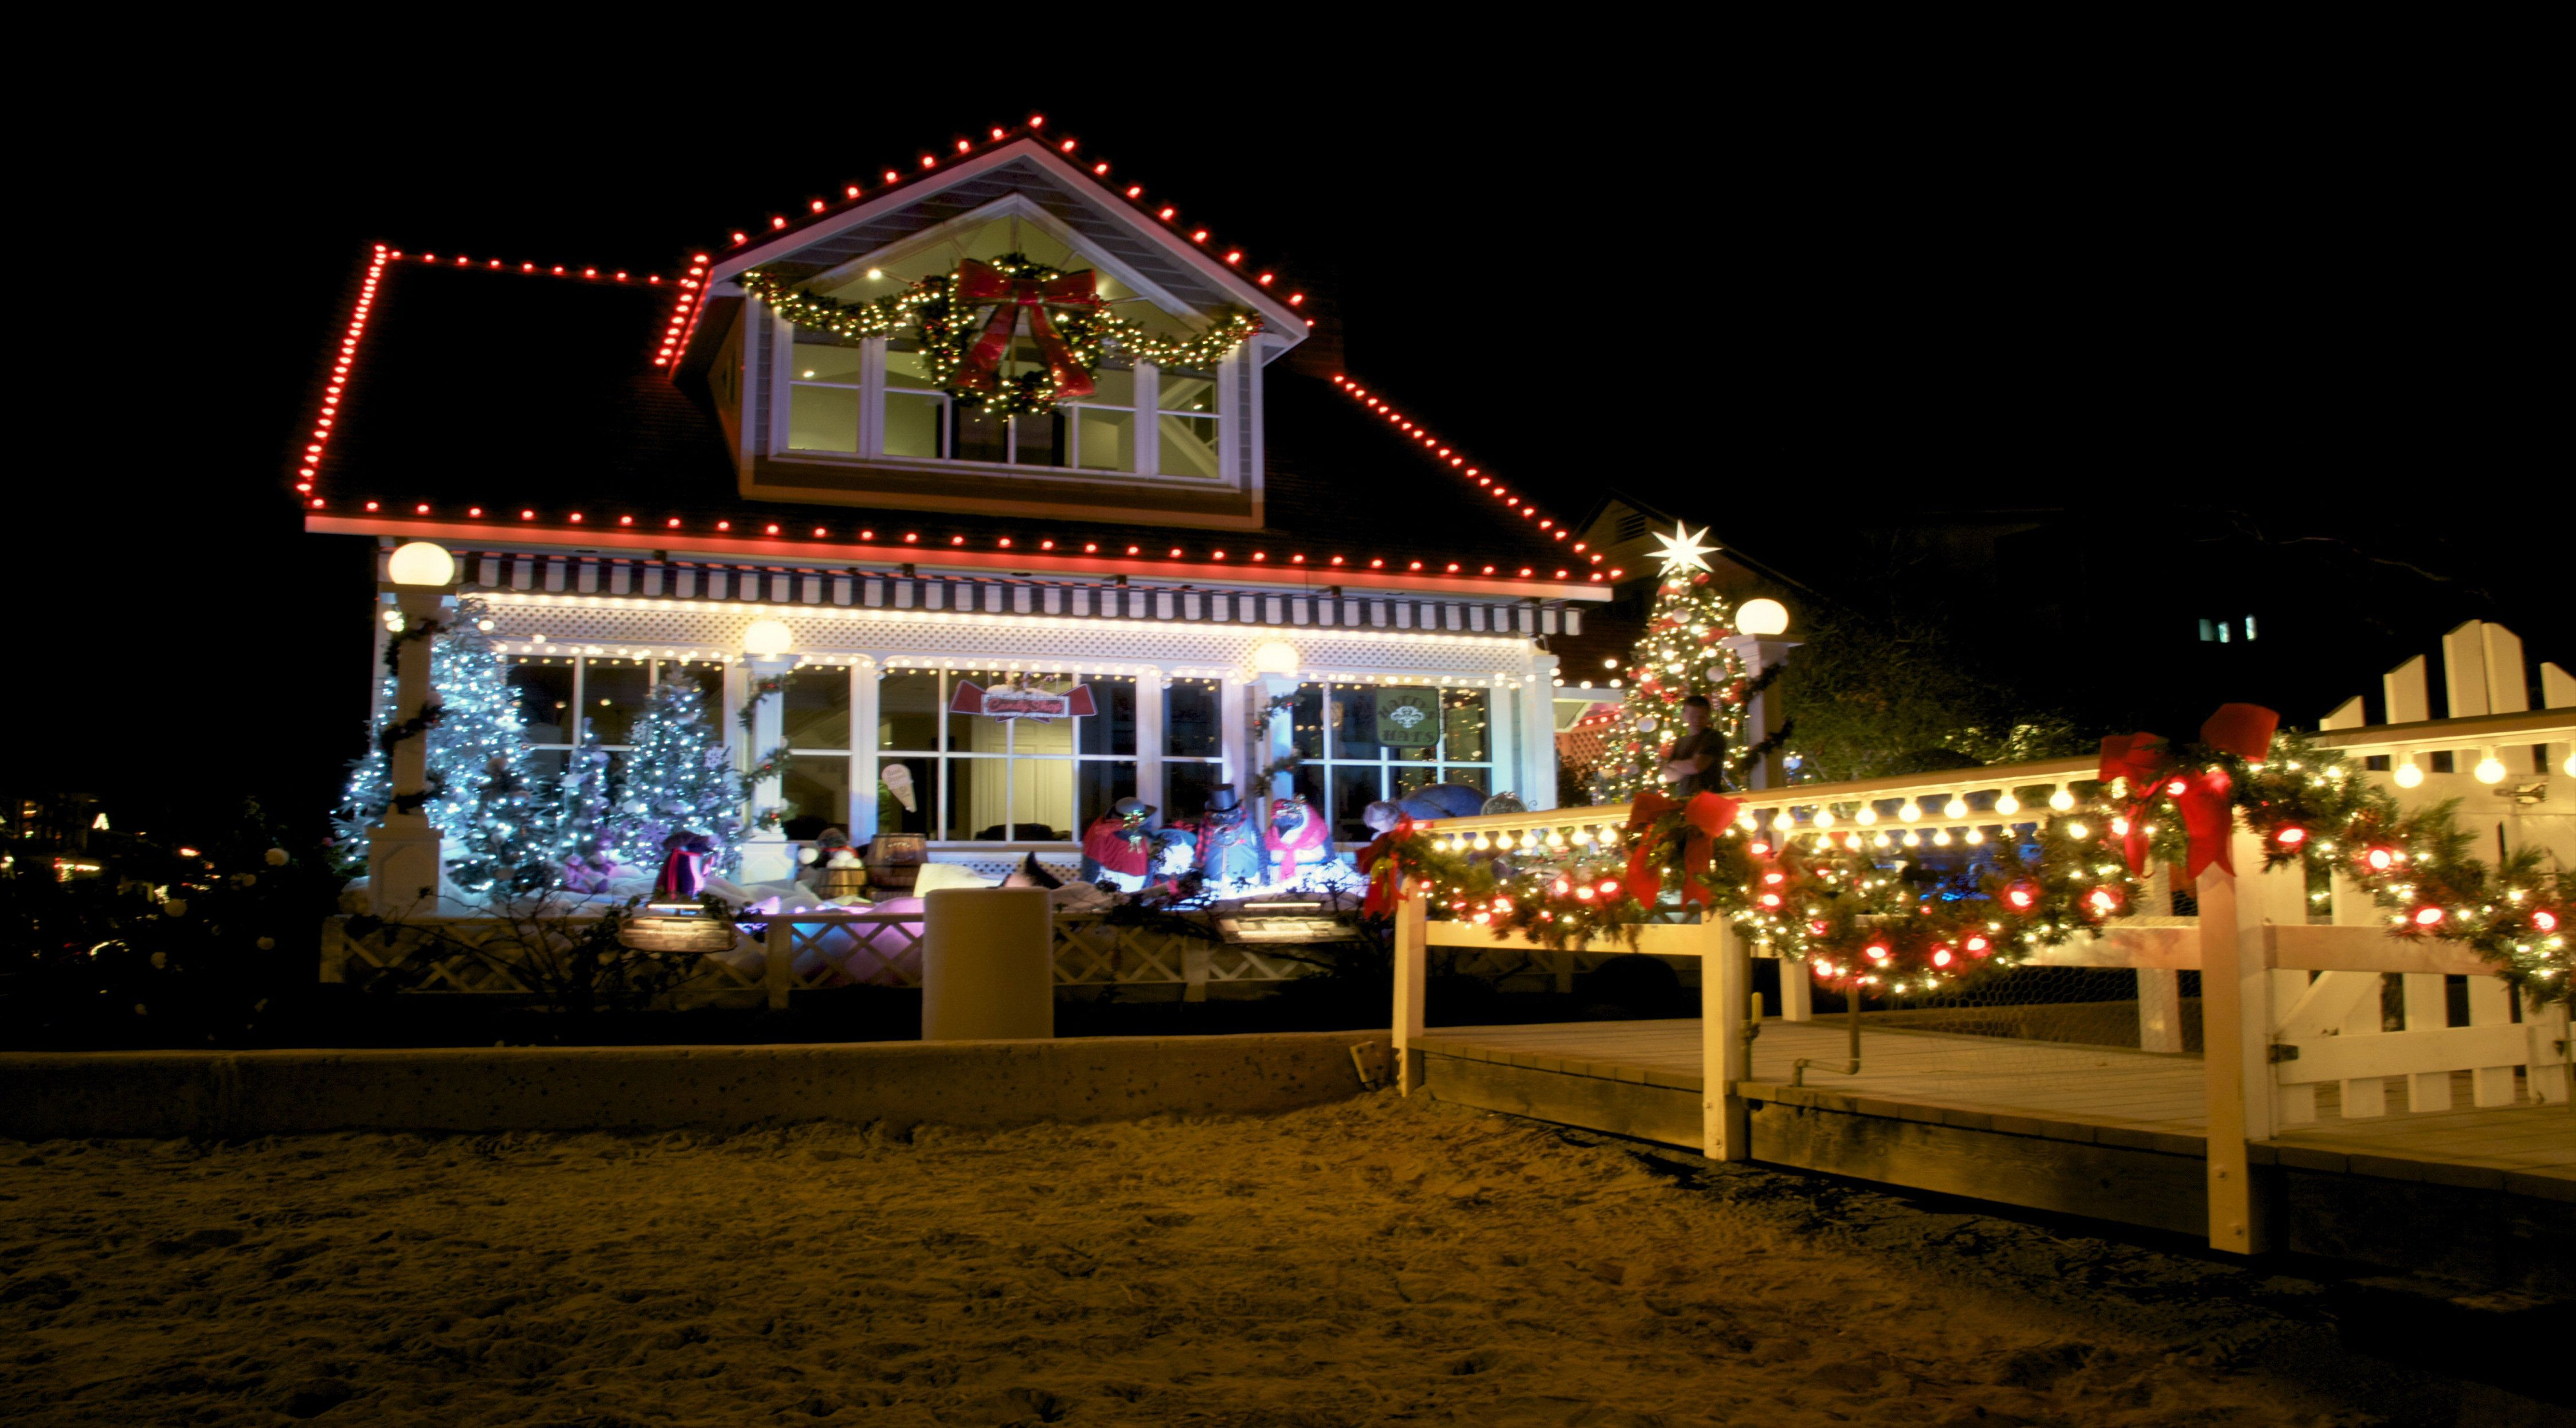 Pin By Home Decor On Home Ideas In 2019 Christmas Lights Home